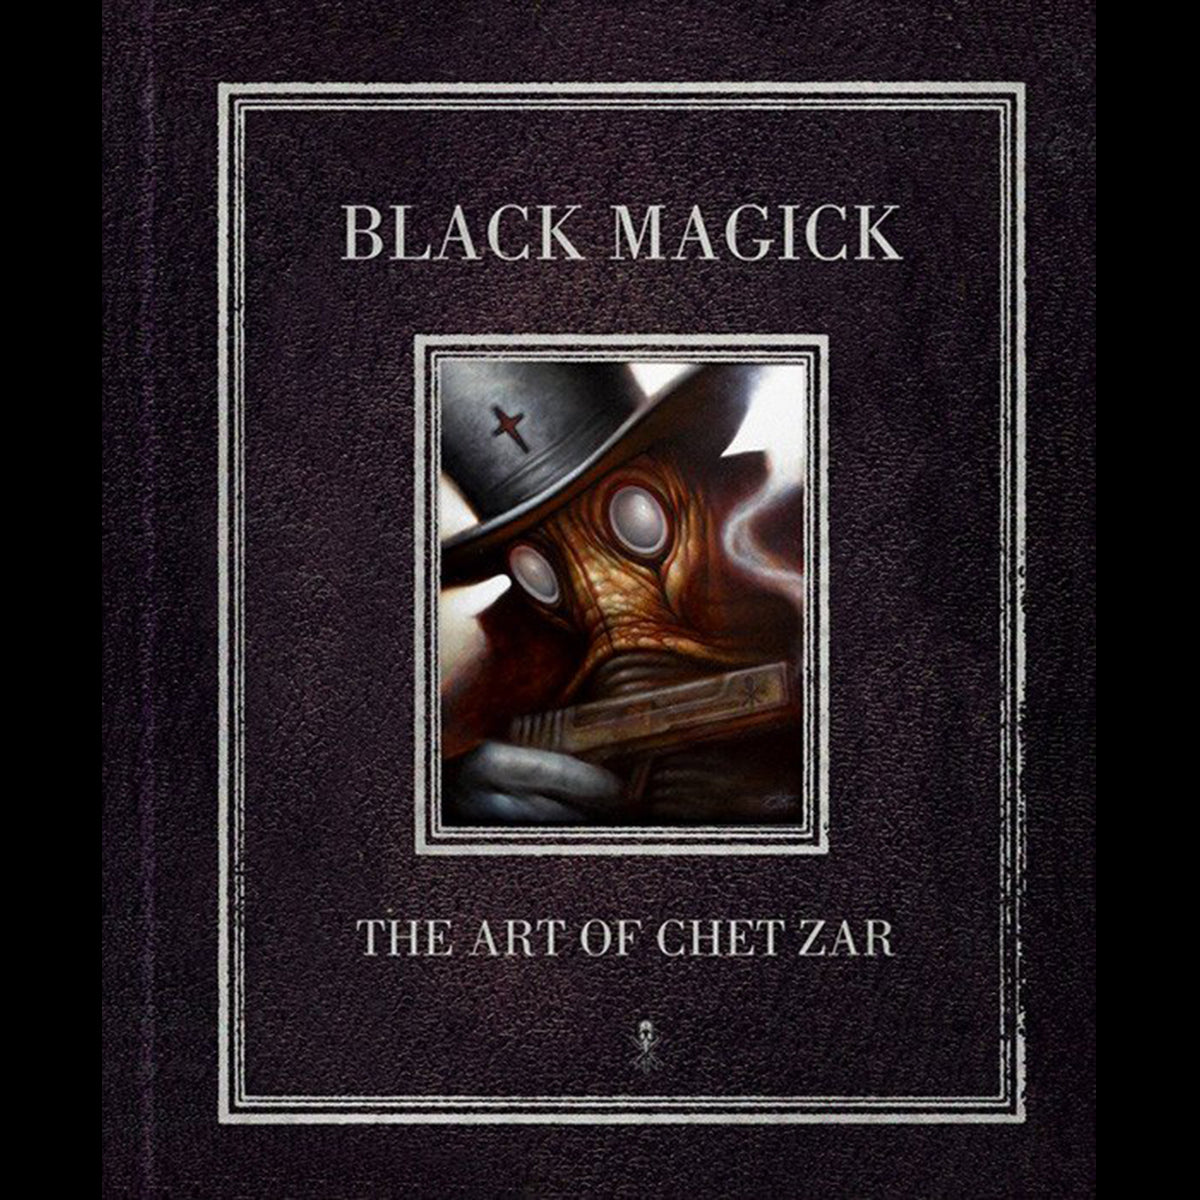 BLACK MAGICK: The Art of Chet Zar